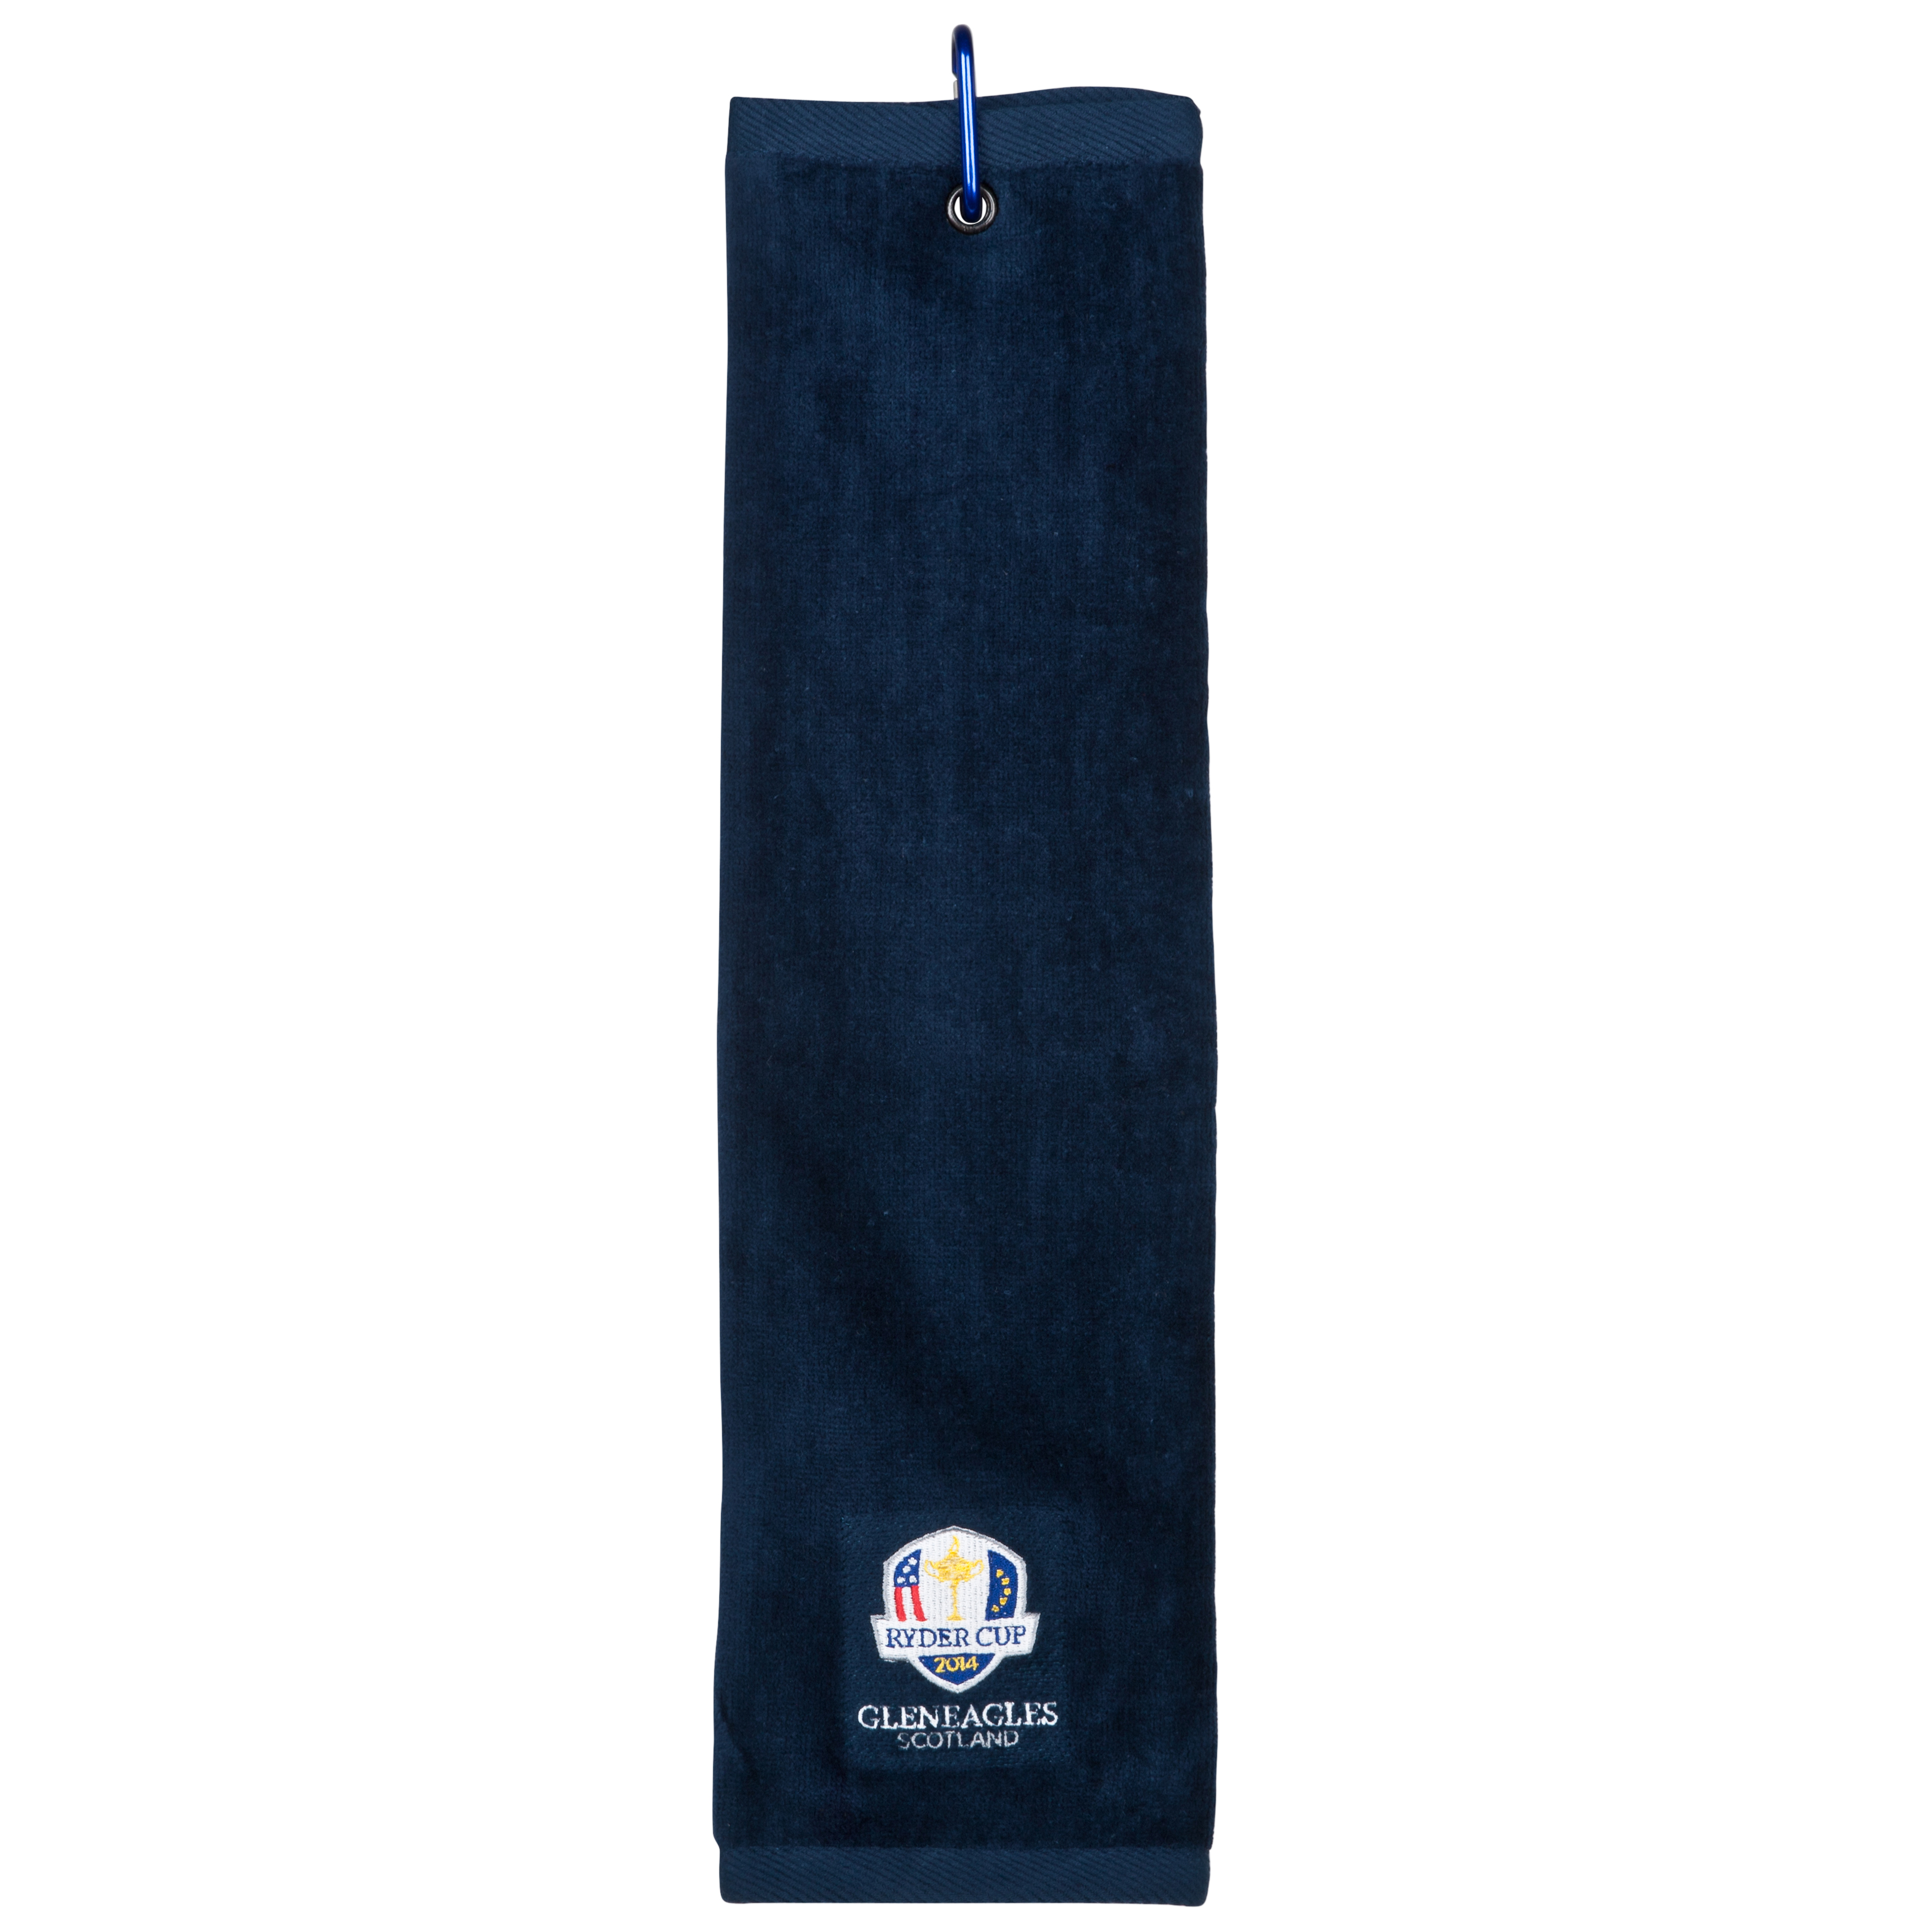 The Ryder Cup Gleneagles 2014 Tri Fold Towel - Navy